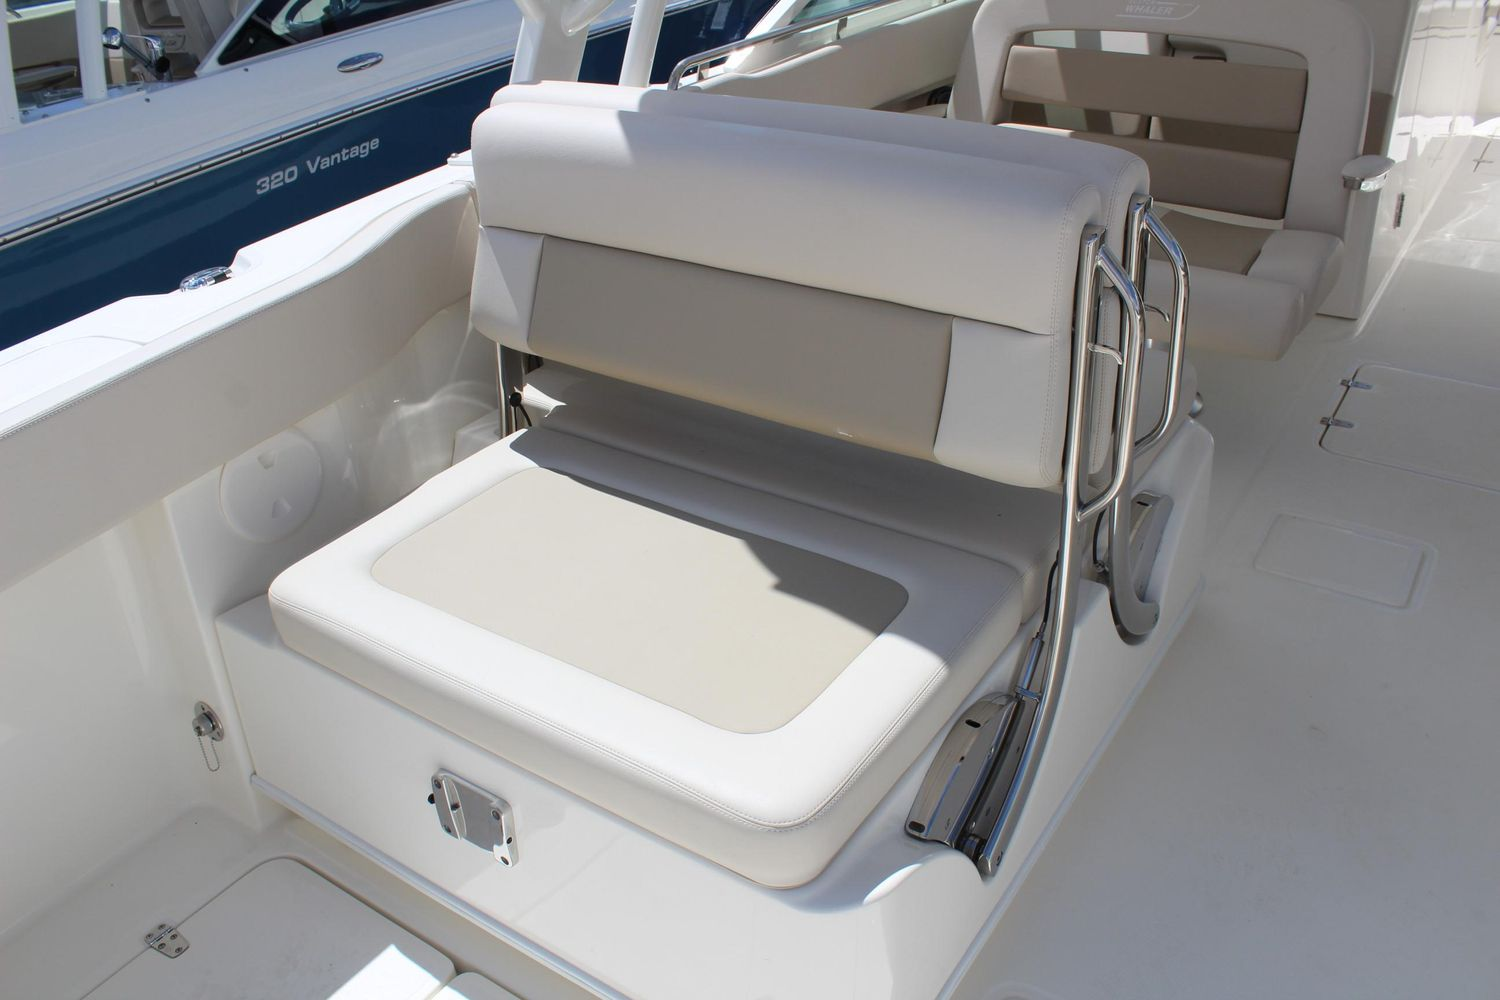 2021 Boston Whaler                                                              320 Vantage Image Thumbnail #4